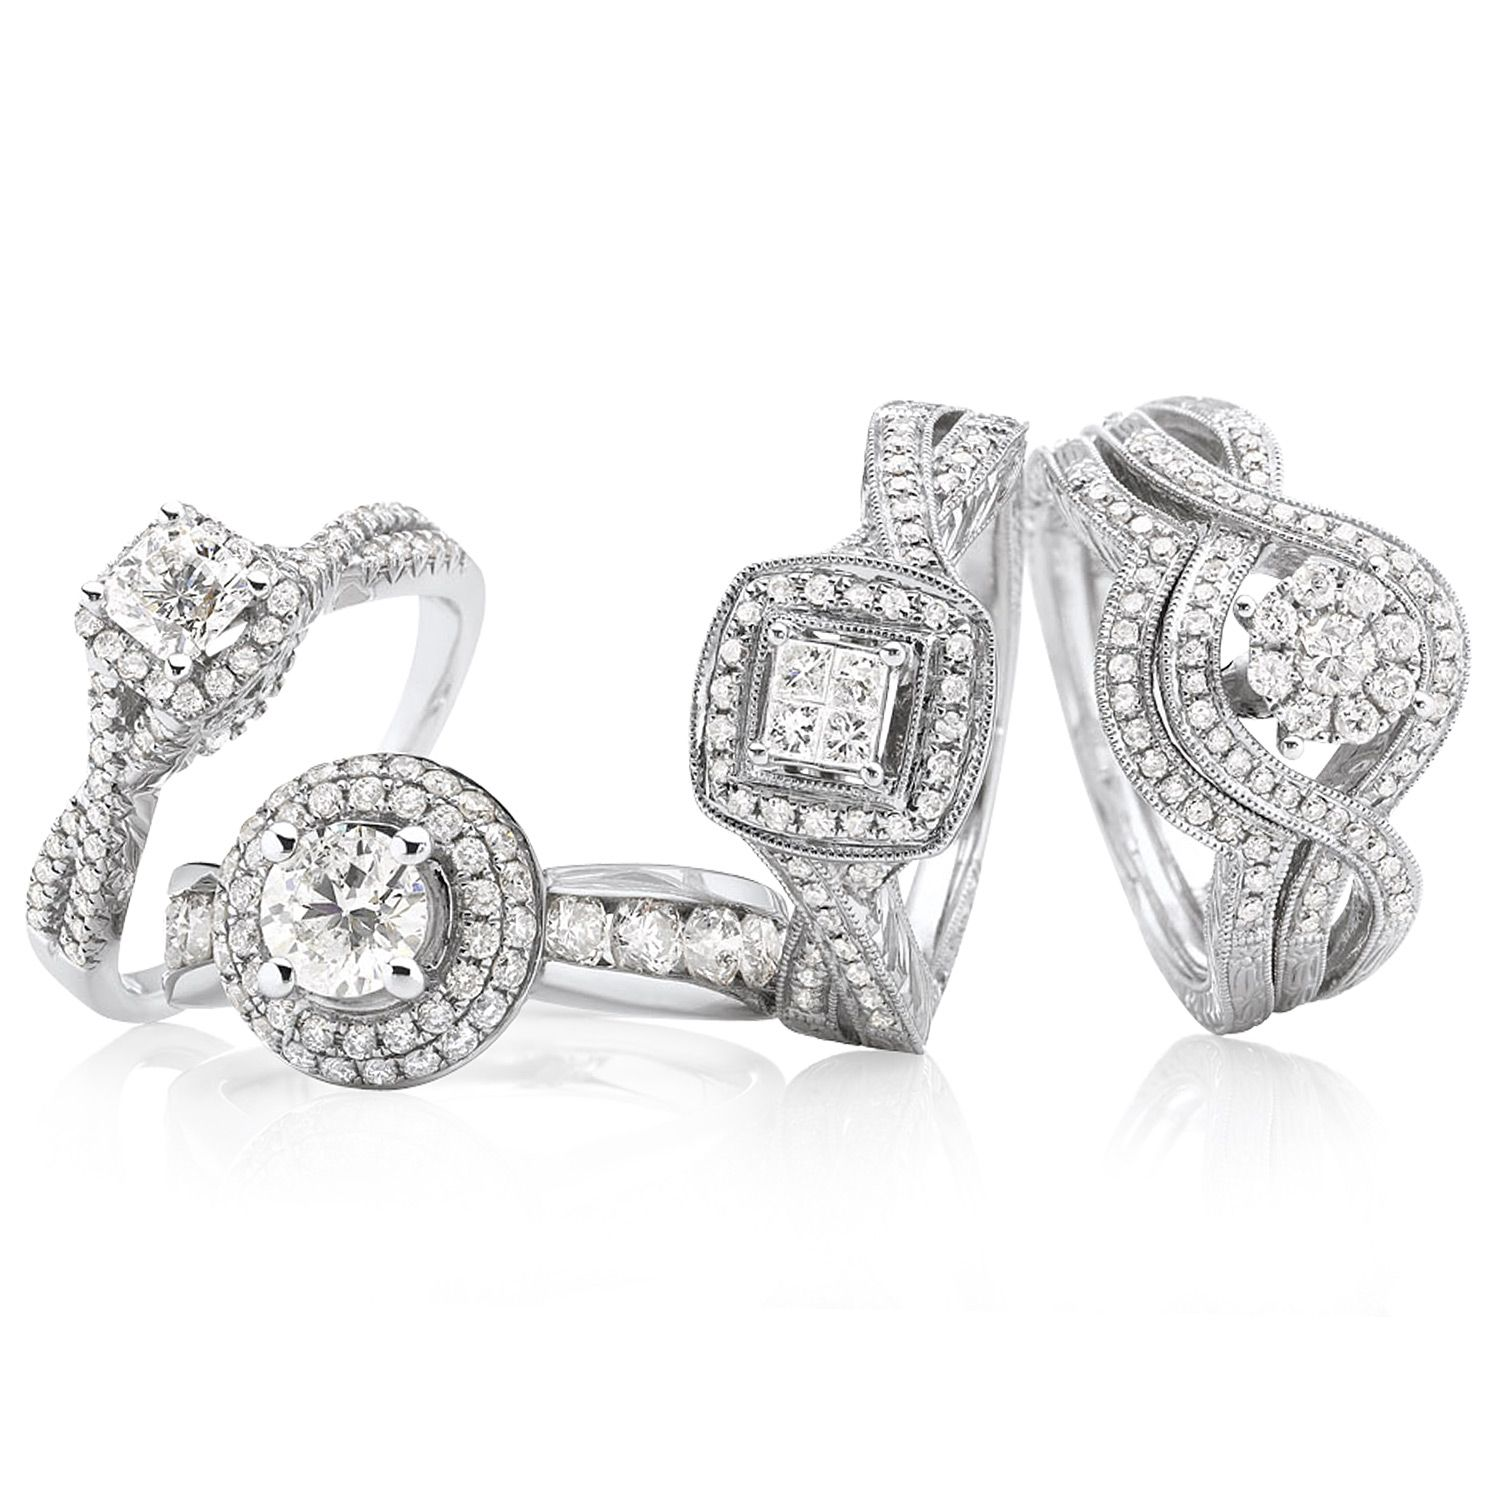 jcpenney jewelry wedding rings JCPenney put a ring on it modern bride true love and cherished hearts diamond ring collections